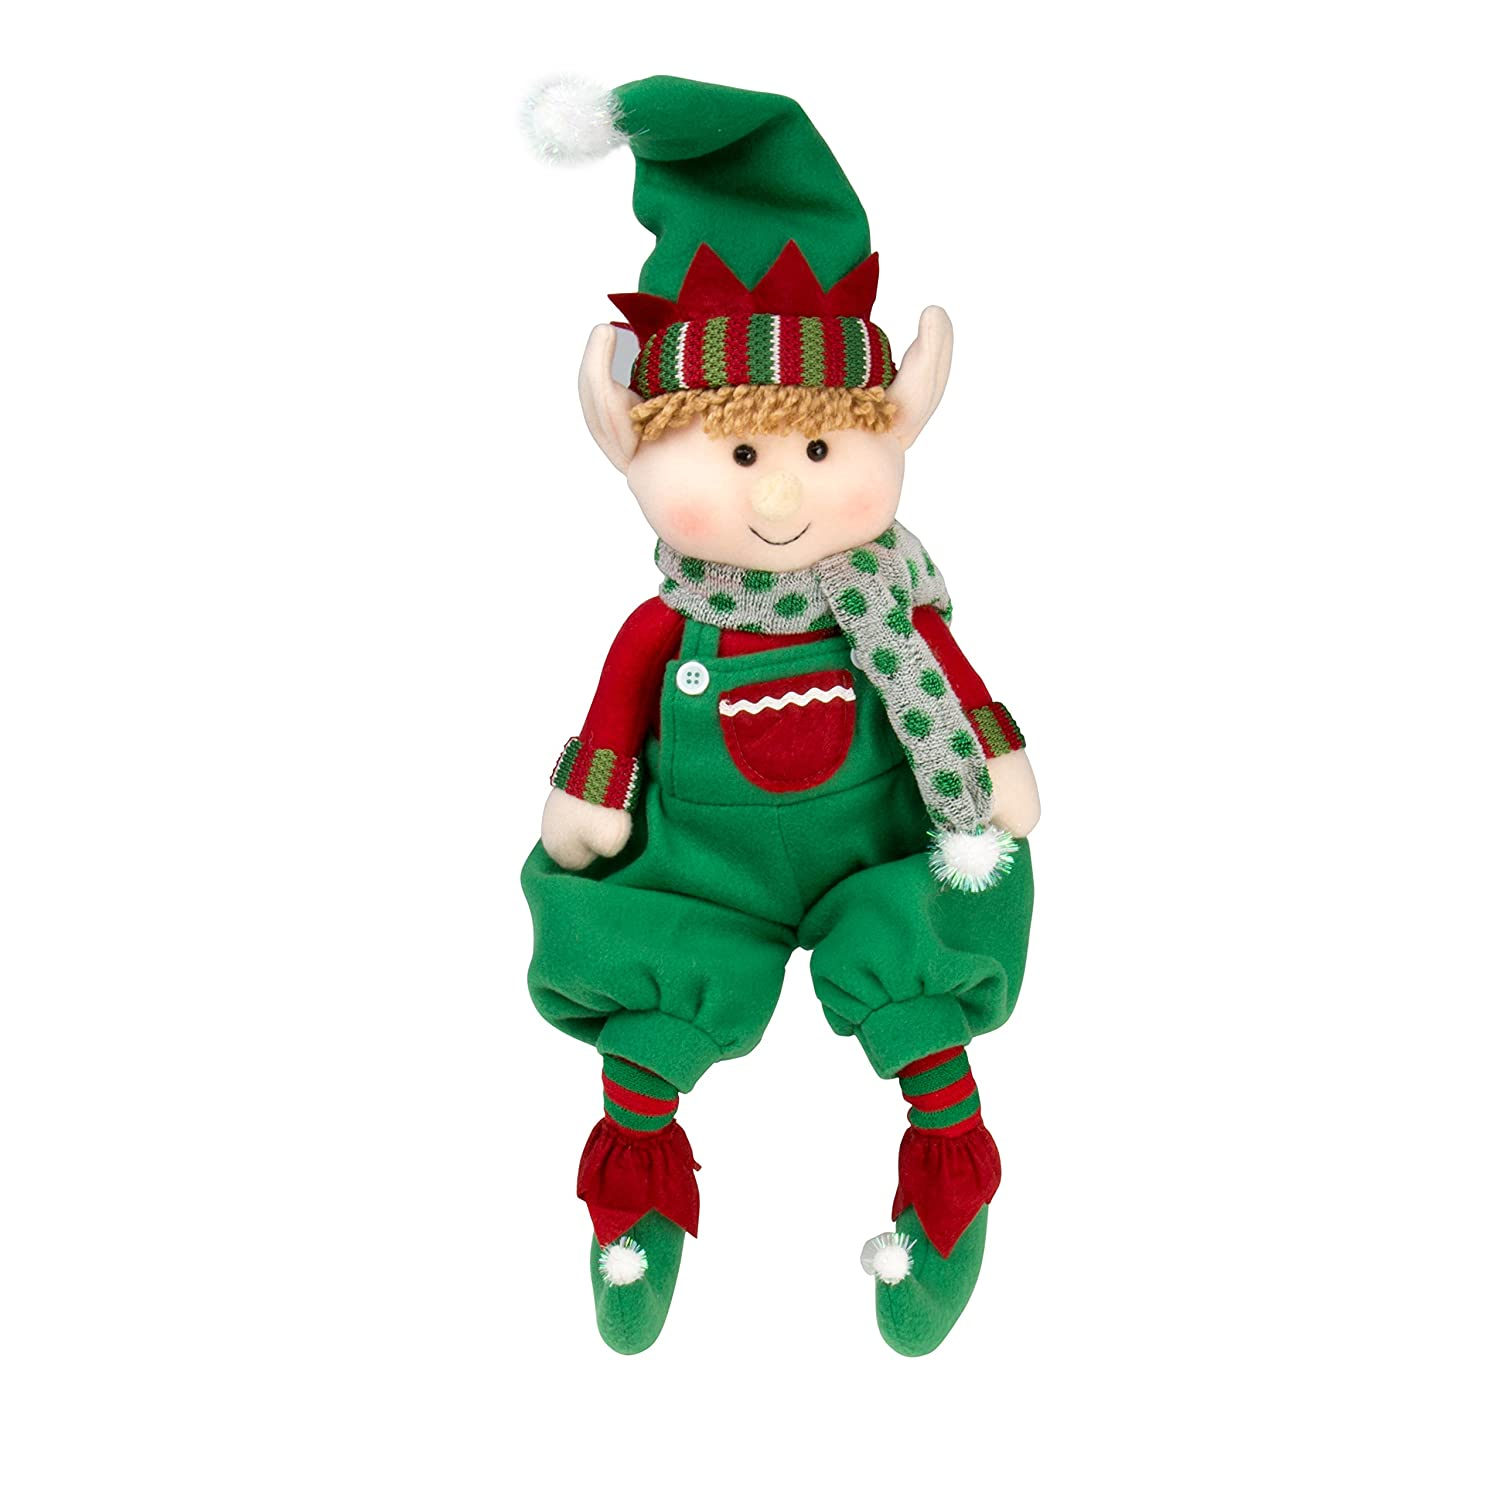 "Amazon Elf Plush Christmas Stuffed Toys 12"" Boy and Girl"